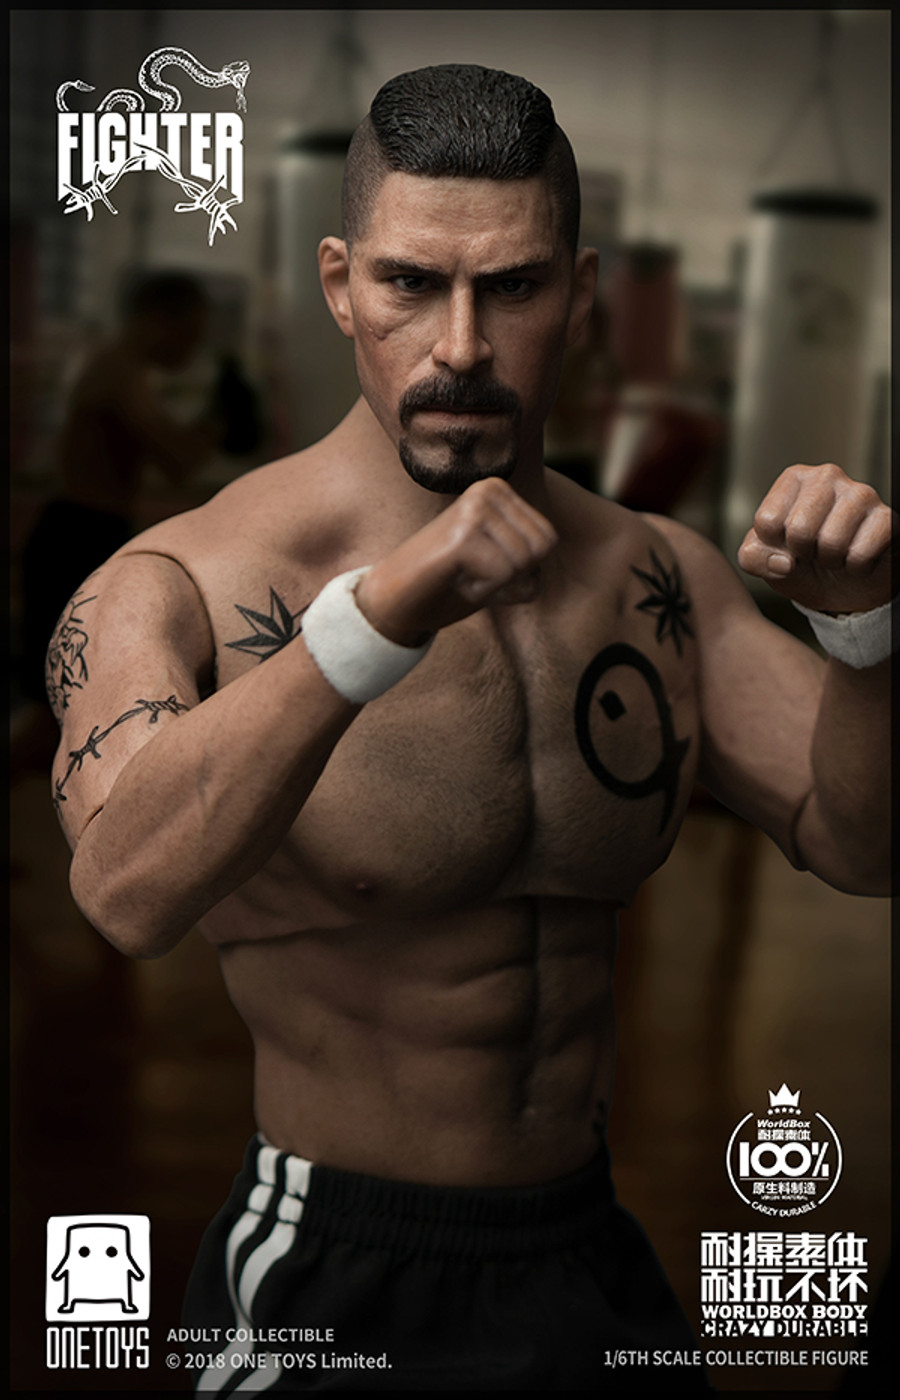 Onetoys x Worldbox - King Fighter Version A